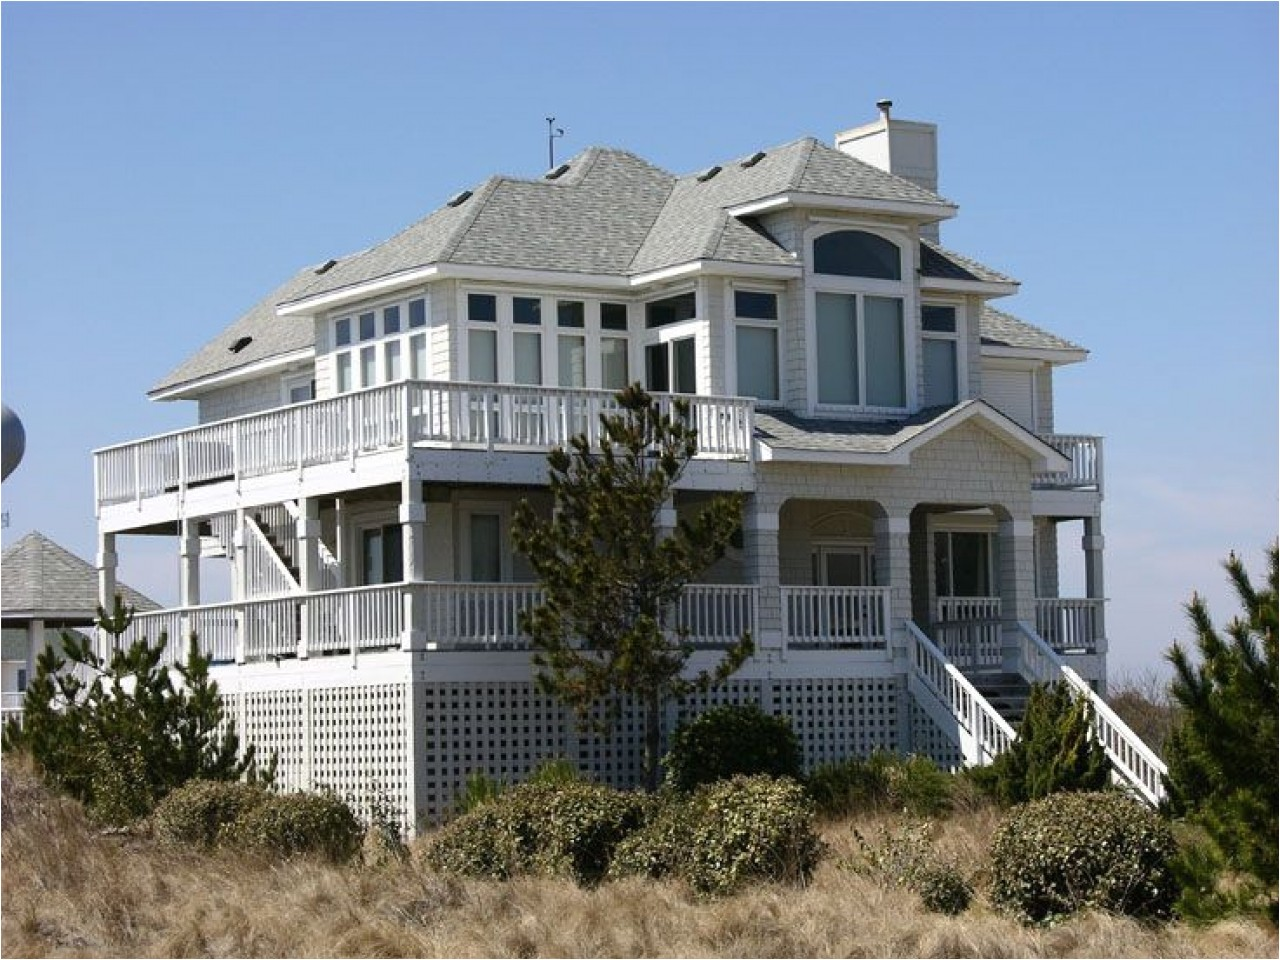 85692545103d2e81 2 story beach house plans 2 story beach house with deck